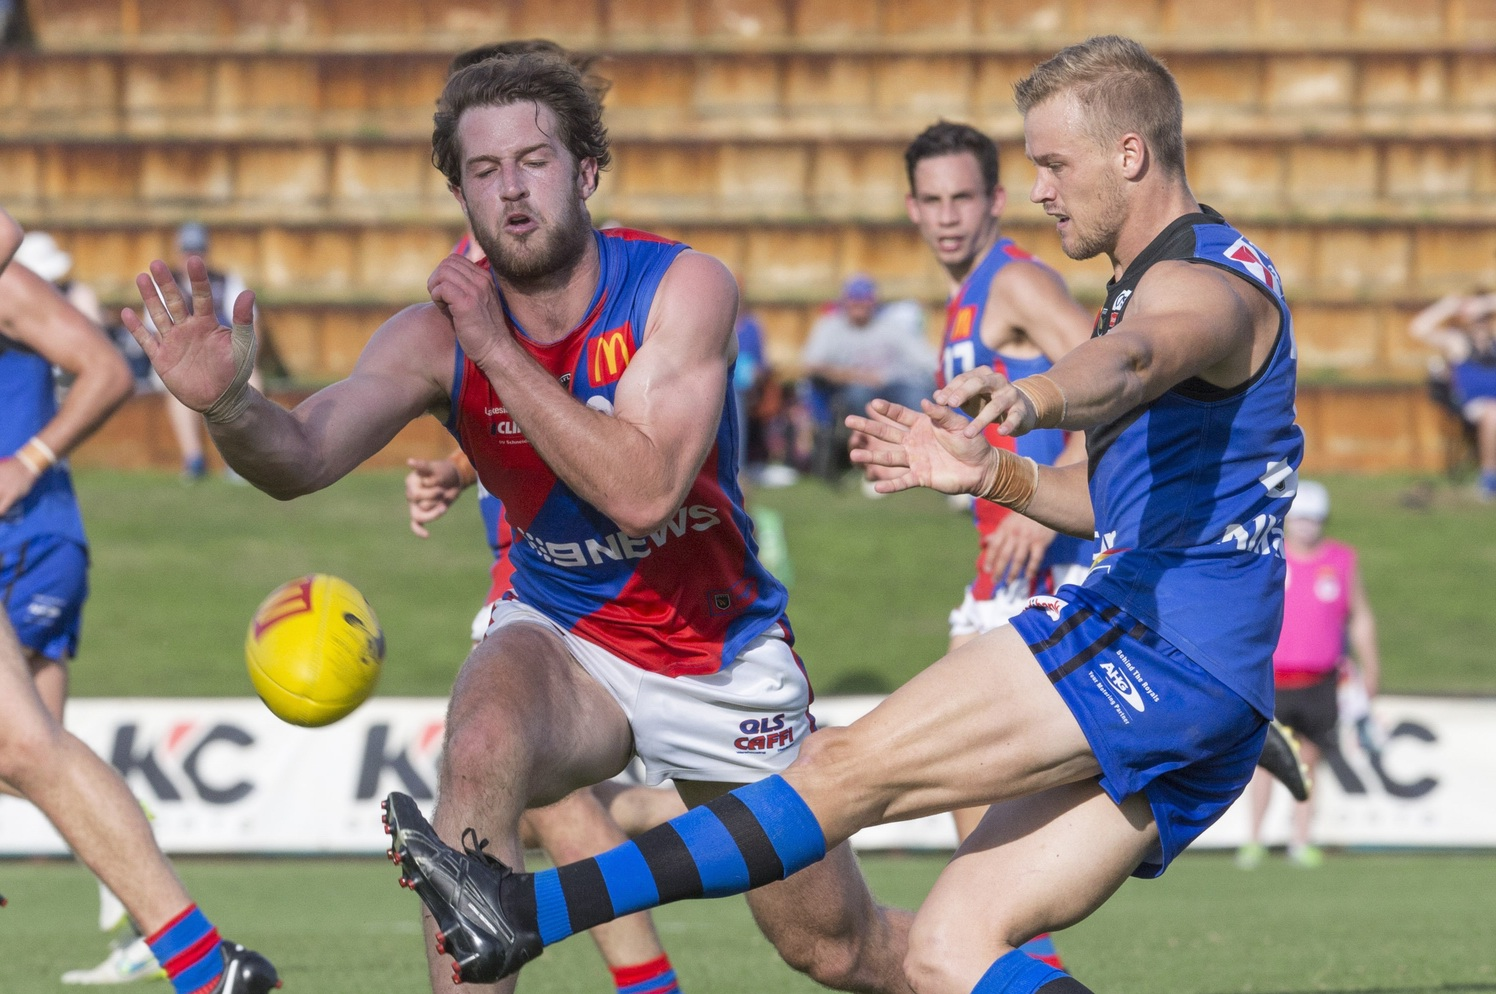 Nick Rodda attempts to smother East Perth's Corey Adamson. Picture: Dan White